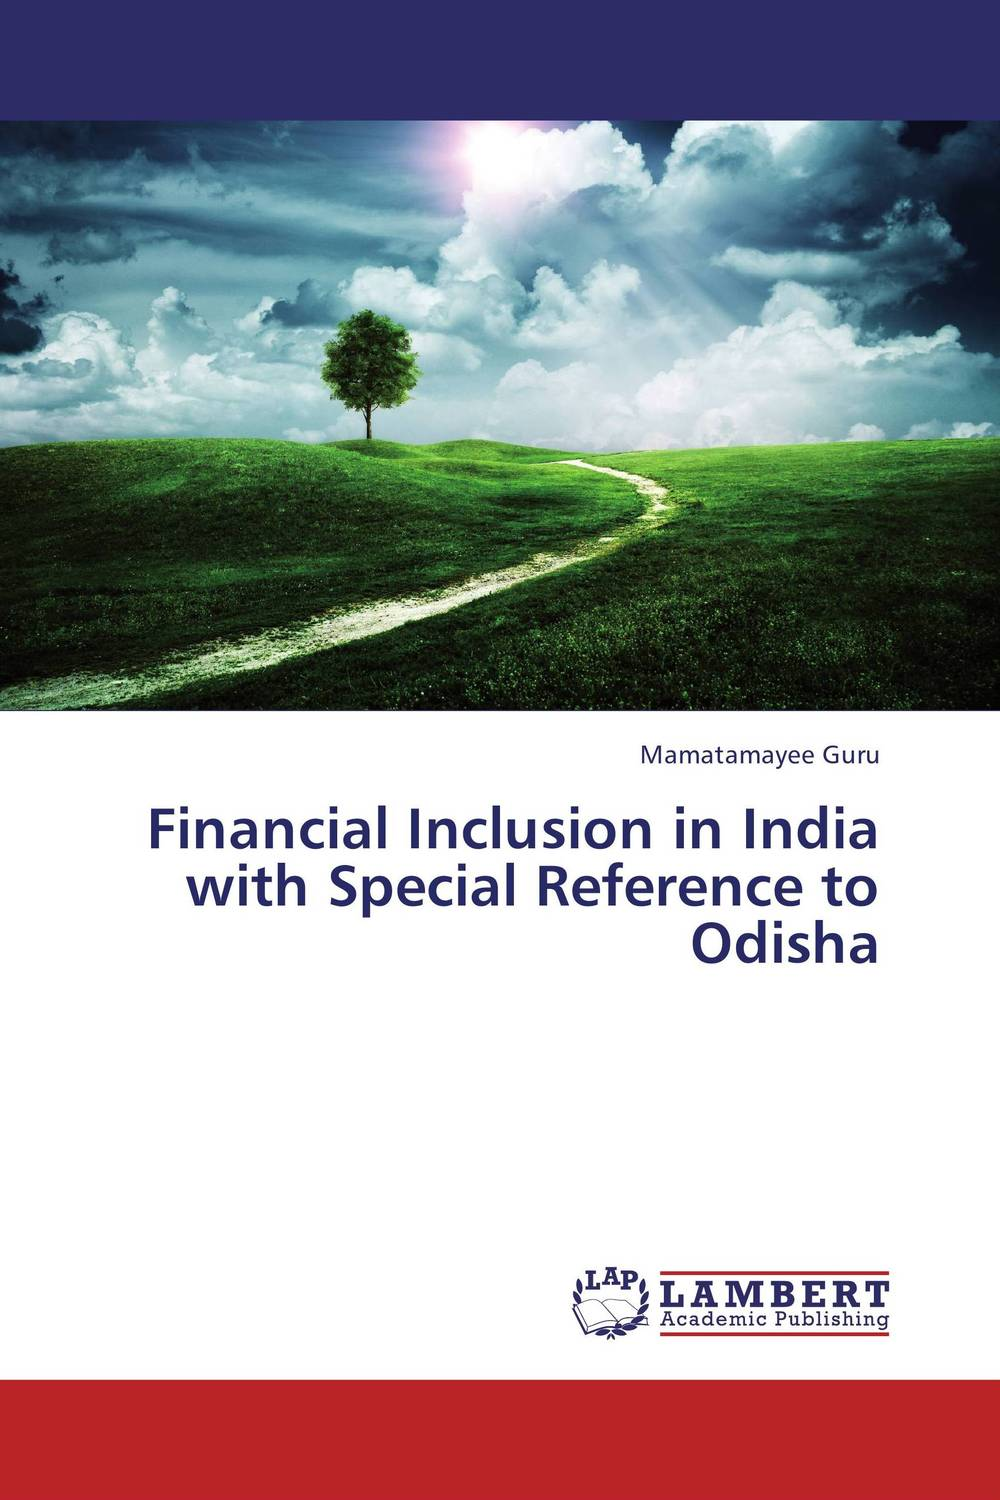 Financial Inclusion in India with Special Reference to Odisha 4x lot dropshiping 400w mini smoke machine fog machine special effects for stage light party events 90 240v